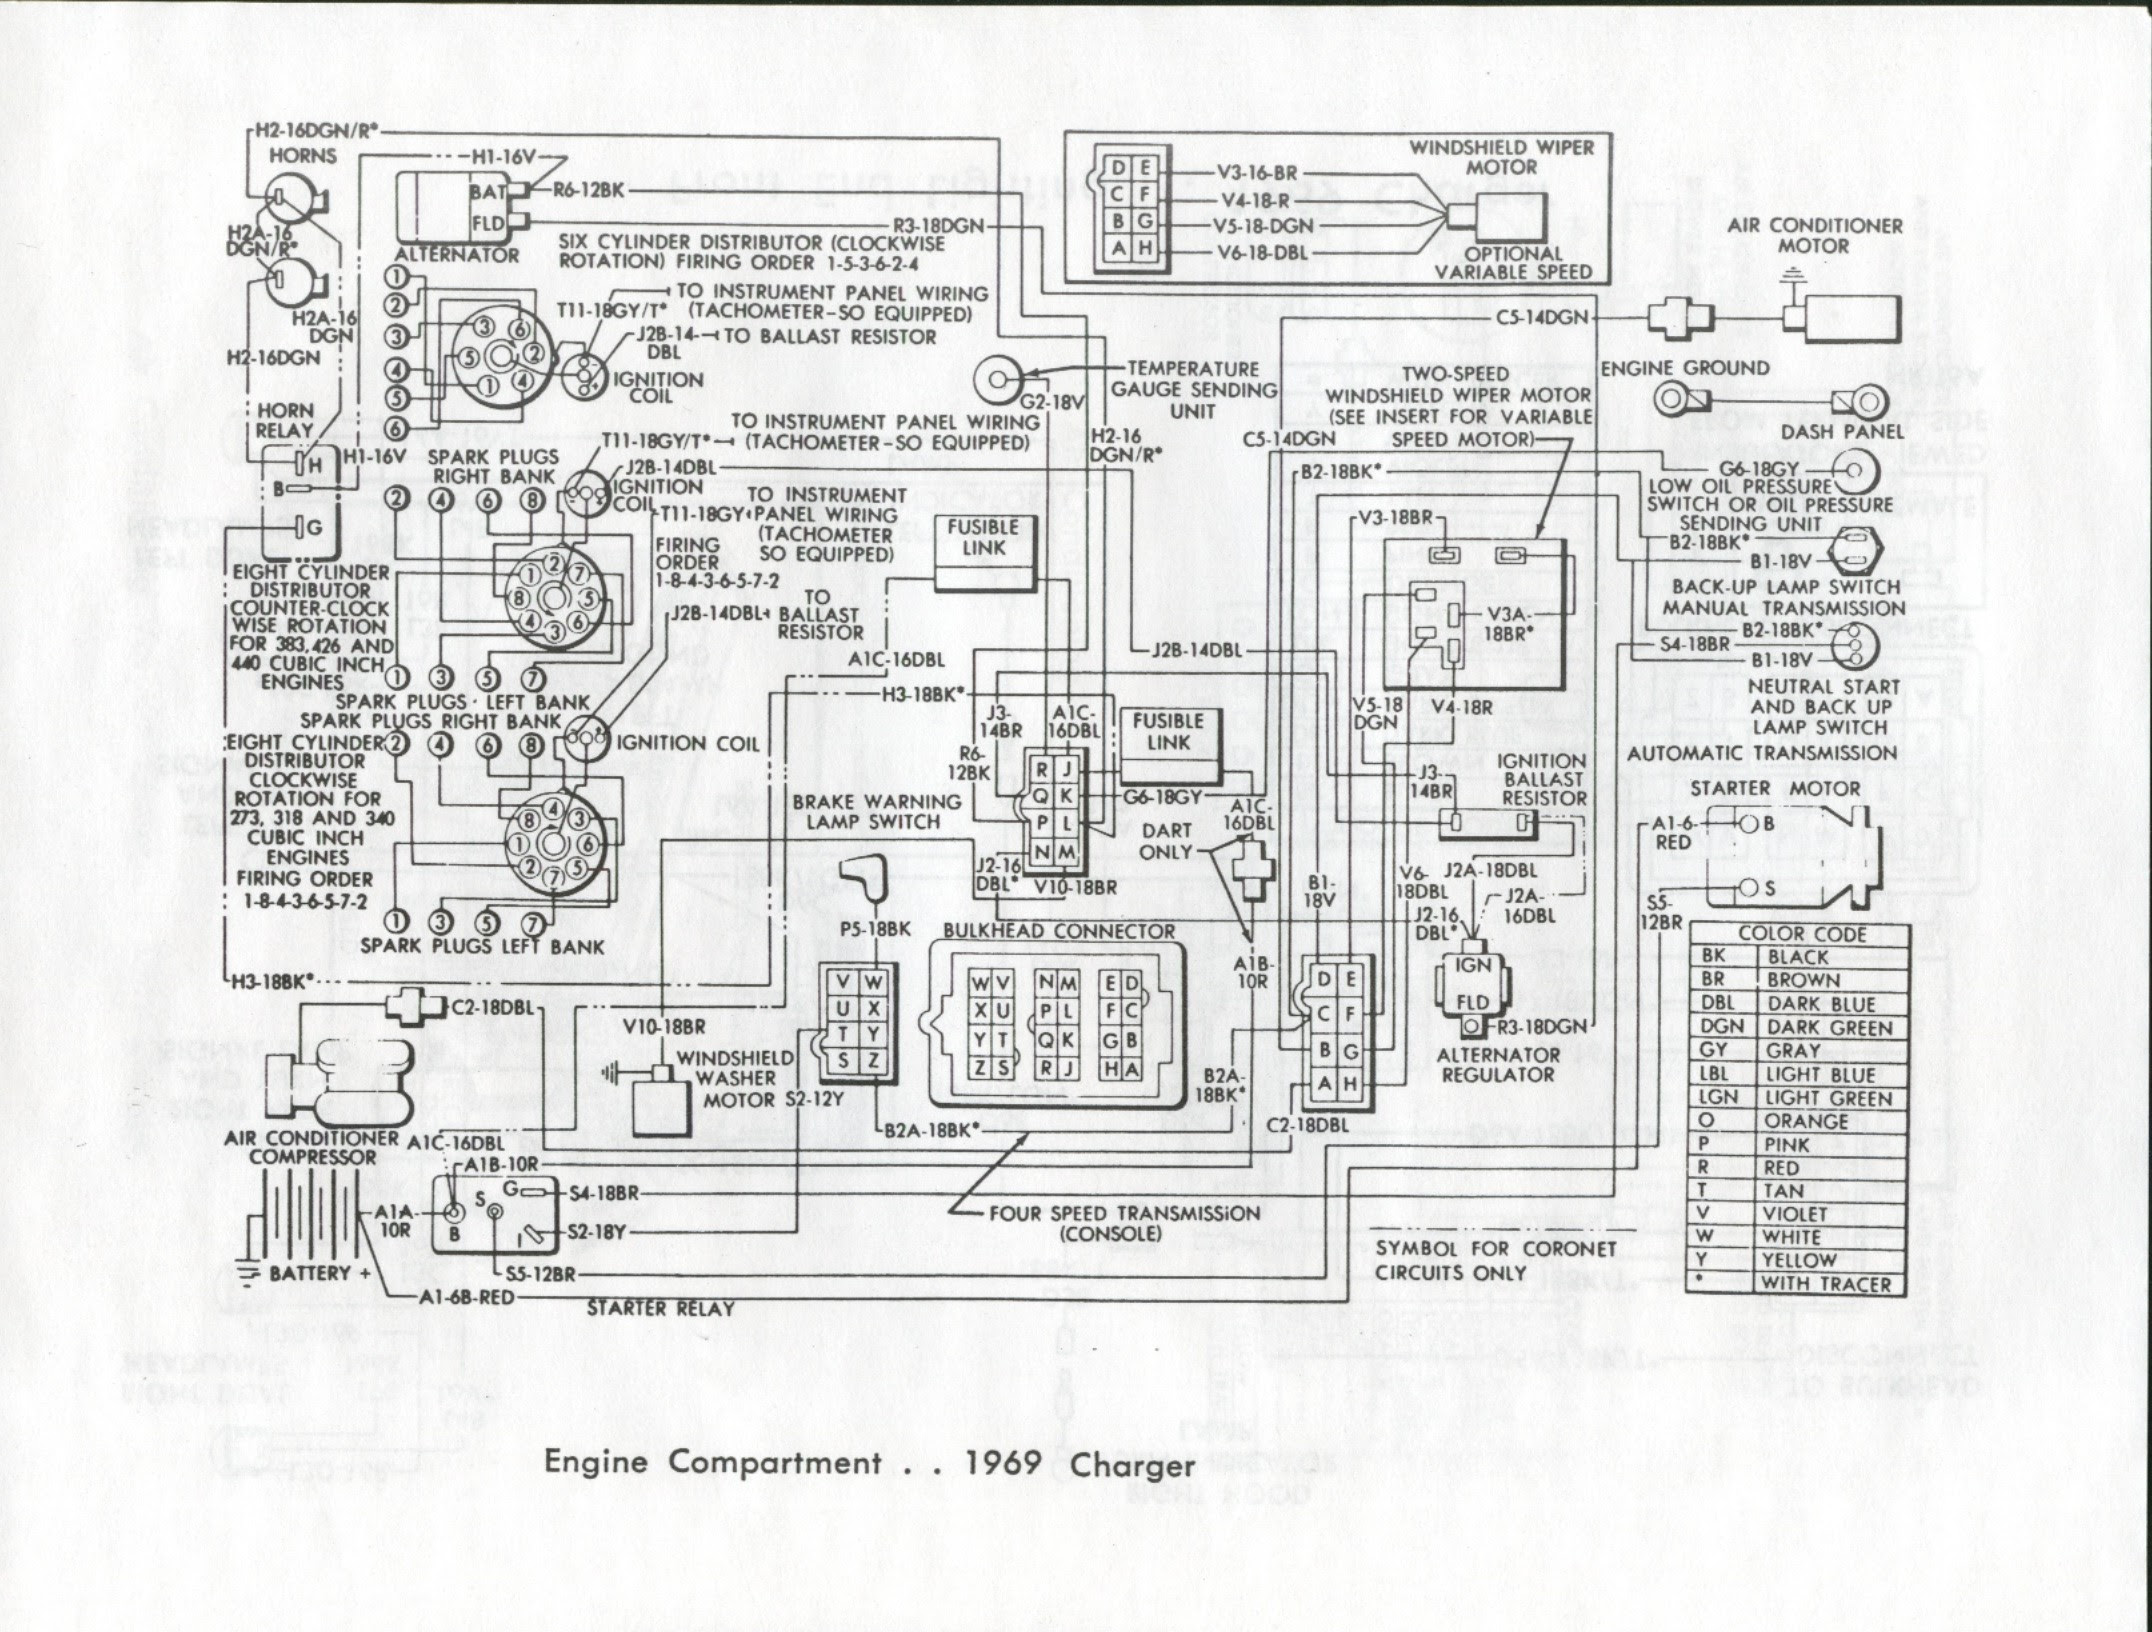 1968 Dodge Charger Ac Wiring Diagram 89 Ford Bronco 2 Fuse Box Diagram Vga Pujaan Hati3 Jeanjaures37 Fr